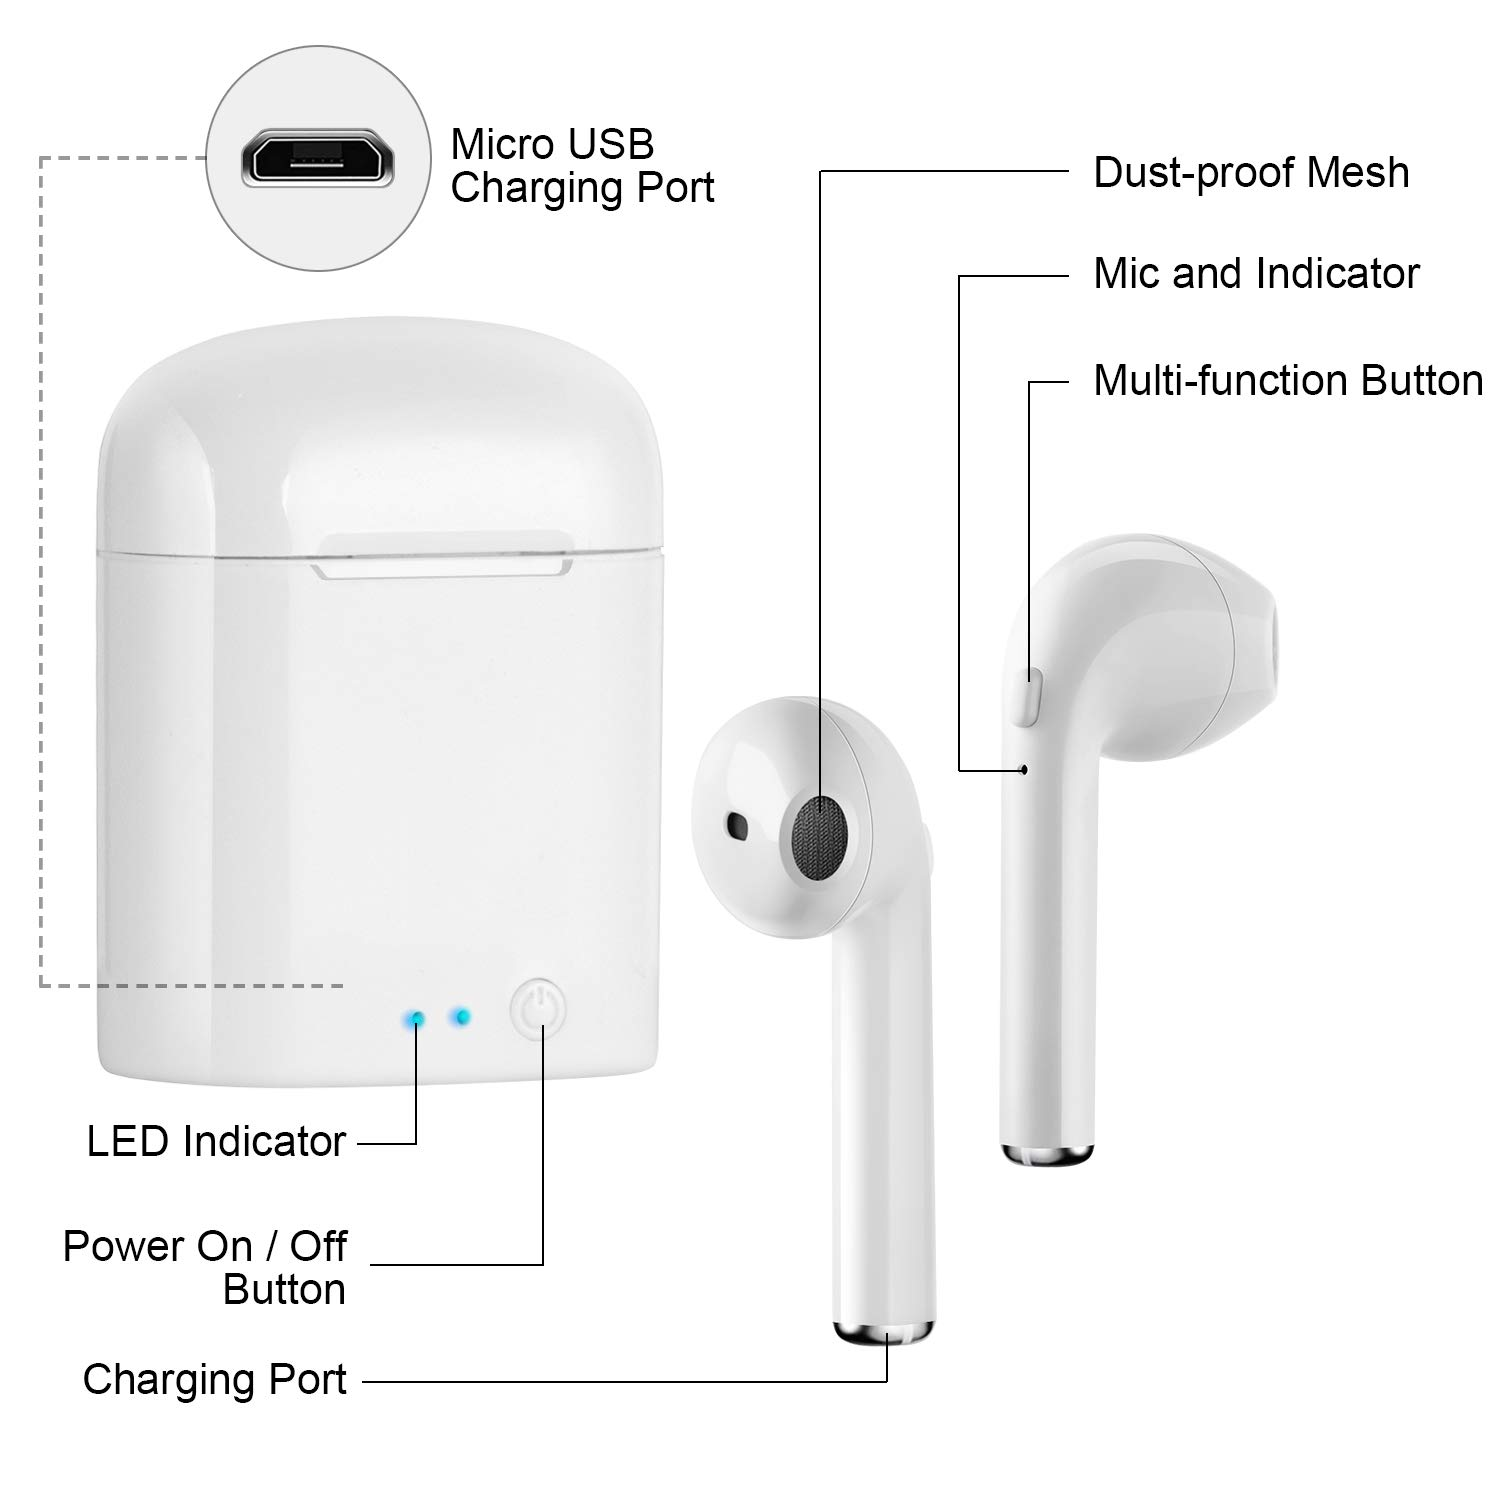 dizauL Wireless Headphones, Wireless Earbuds, Bluetooth Earbuds, Wireless Headsets Stereo In-Ear Earpieces with 2 Built-in Mic Earphone for Smartphones and Tablets